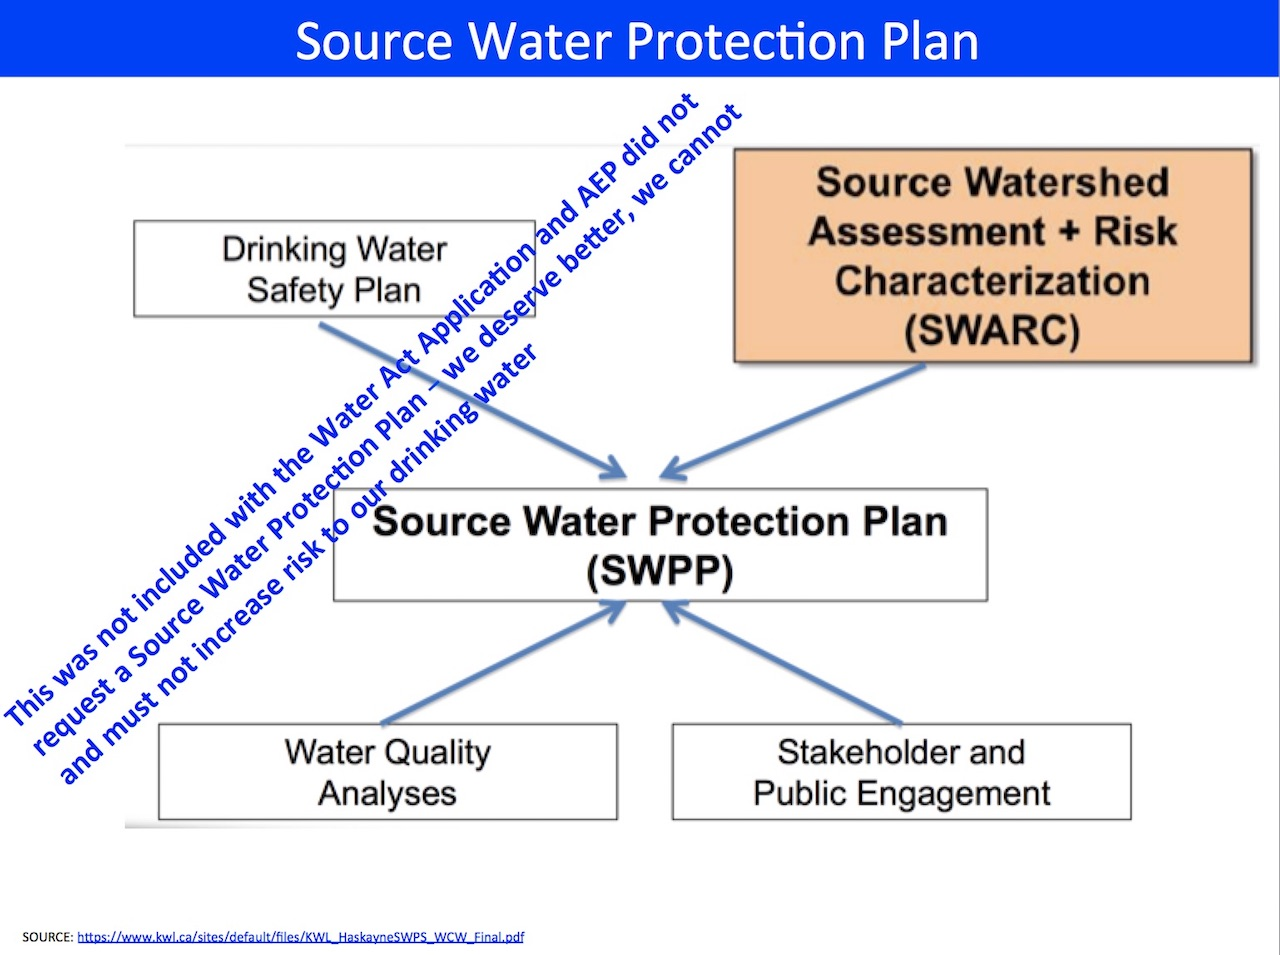 Source_Water_Protection_Plan.jpg